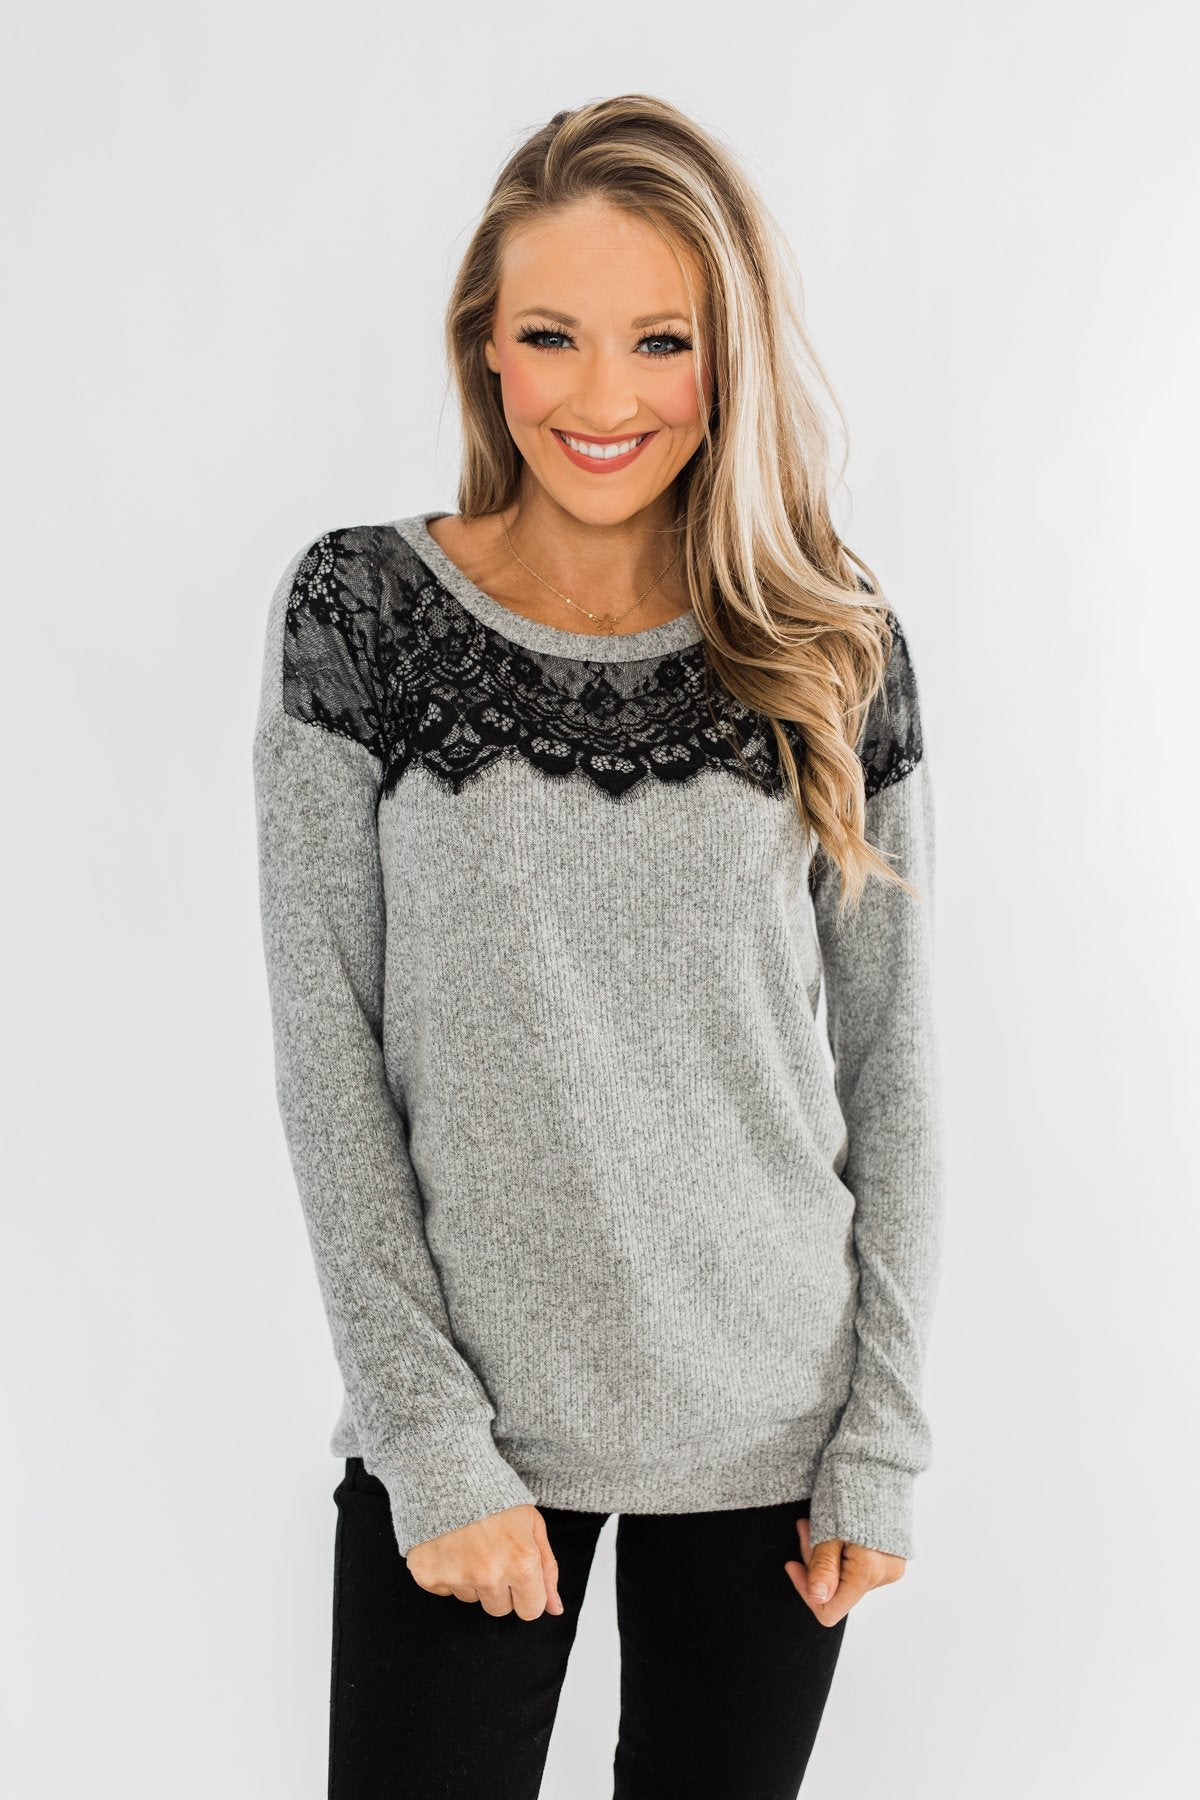 Show Stopper Black Lace Top- Grey